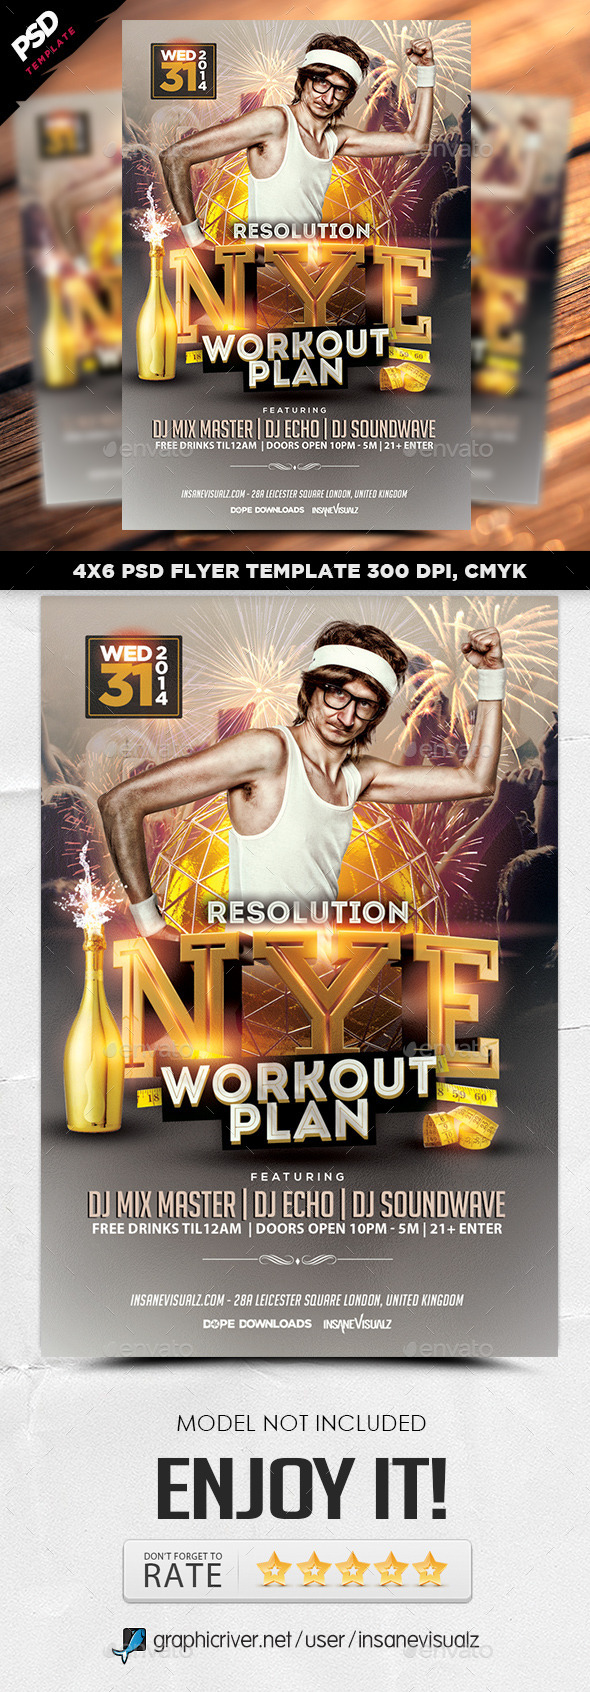 NYE Resolution Workout Plan Flyer - Events Flyers